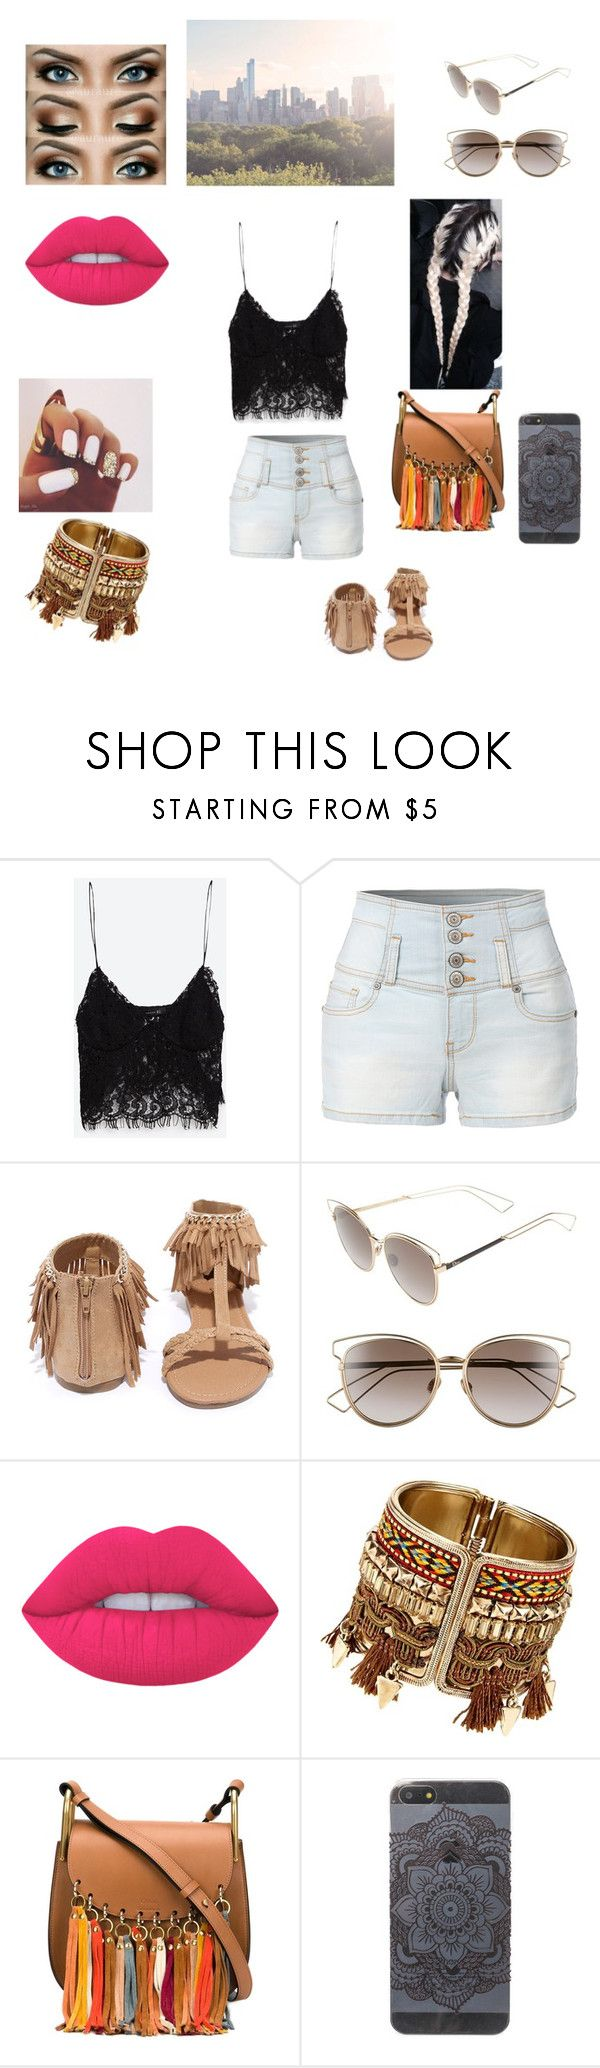 """""""New York Style"""" by chelsey-r-moser ❤ liked on Polyvore featuring Zara, LE3NO, Qupid, Christian Dior, Lime Crime, Chloé and WALL"""